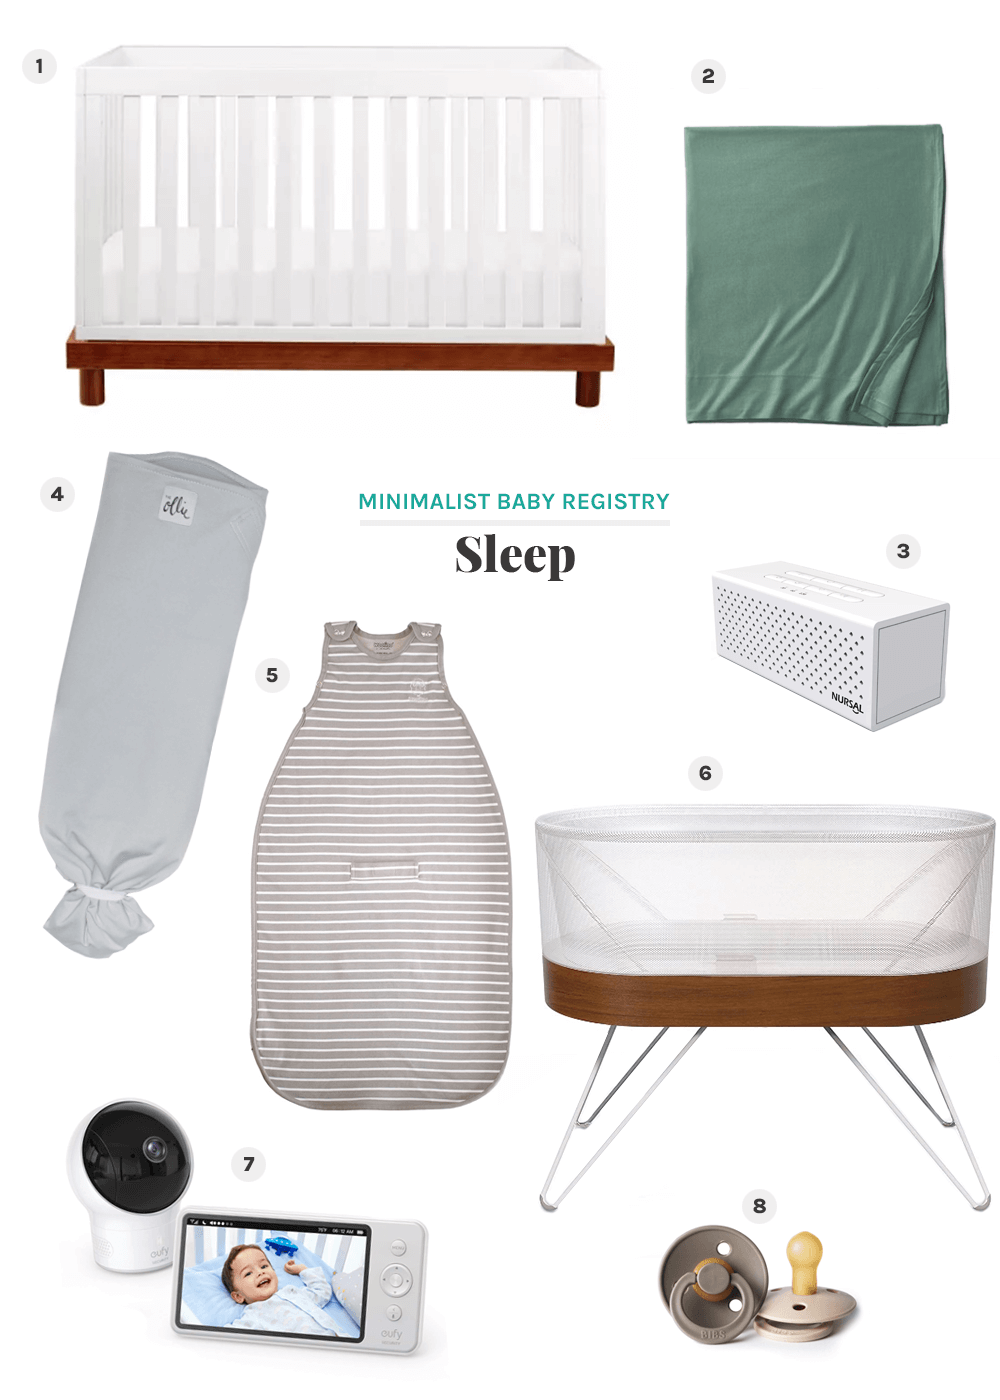 minimalist baby registry sleeping items from the faux martha